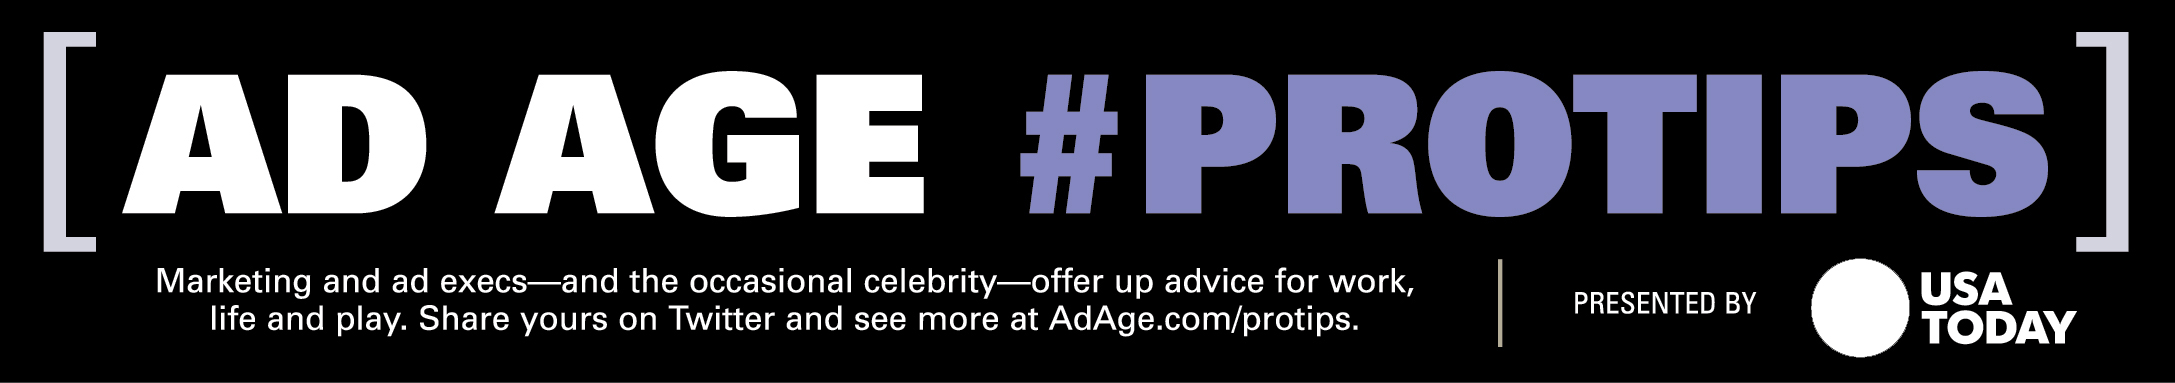 Ad Age Holiday Gift #PROTIPS